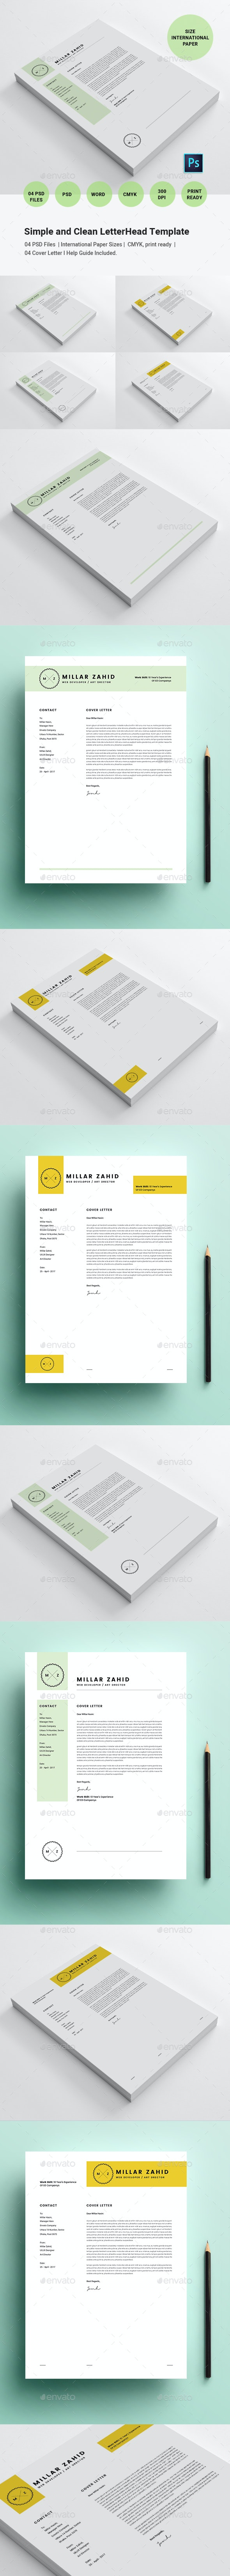 Simple and Clean LetterHead Template - Stationery Print Templates